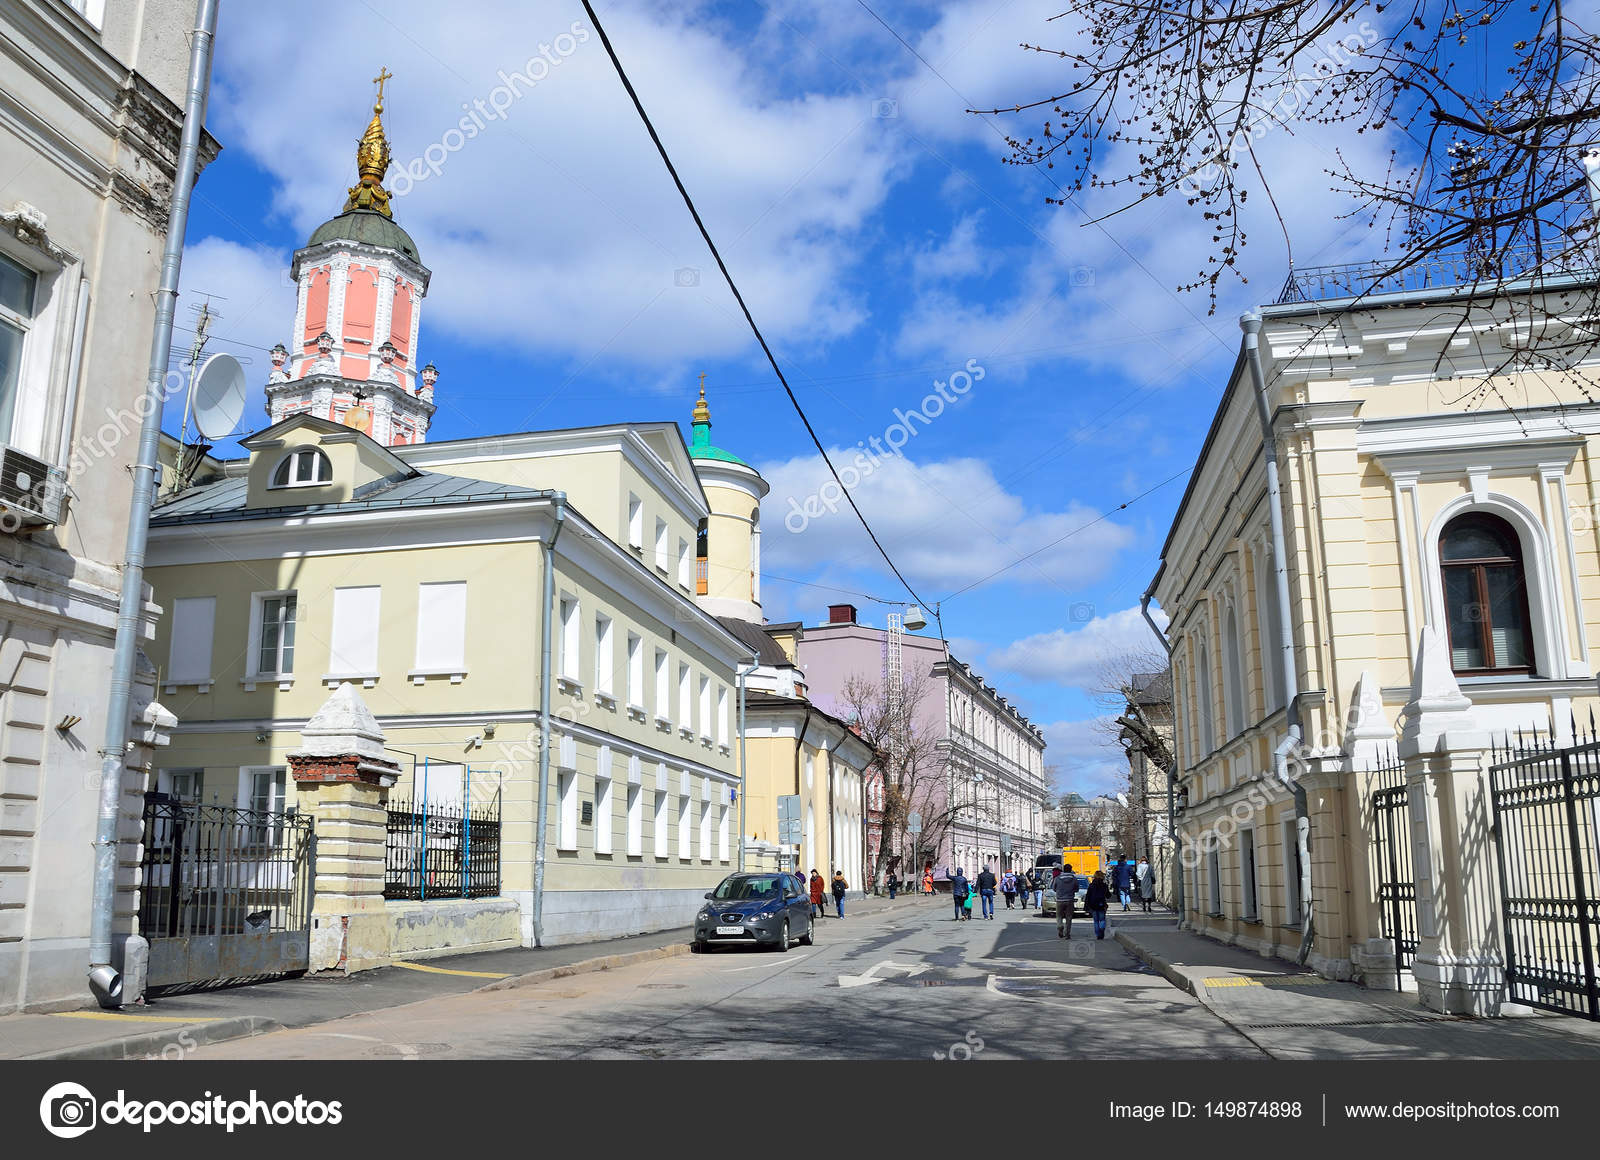 depositphotos 149874898-stock-photo-moscow-russia-april-15-2017